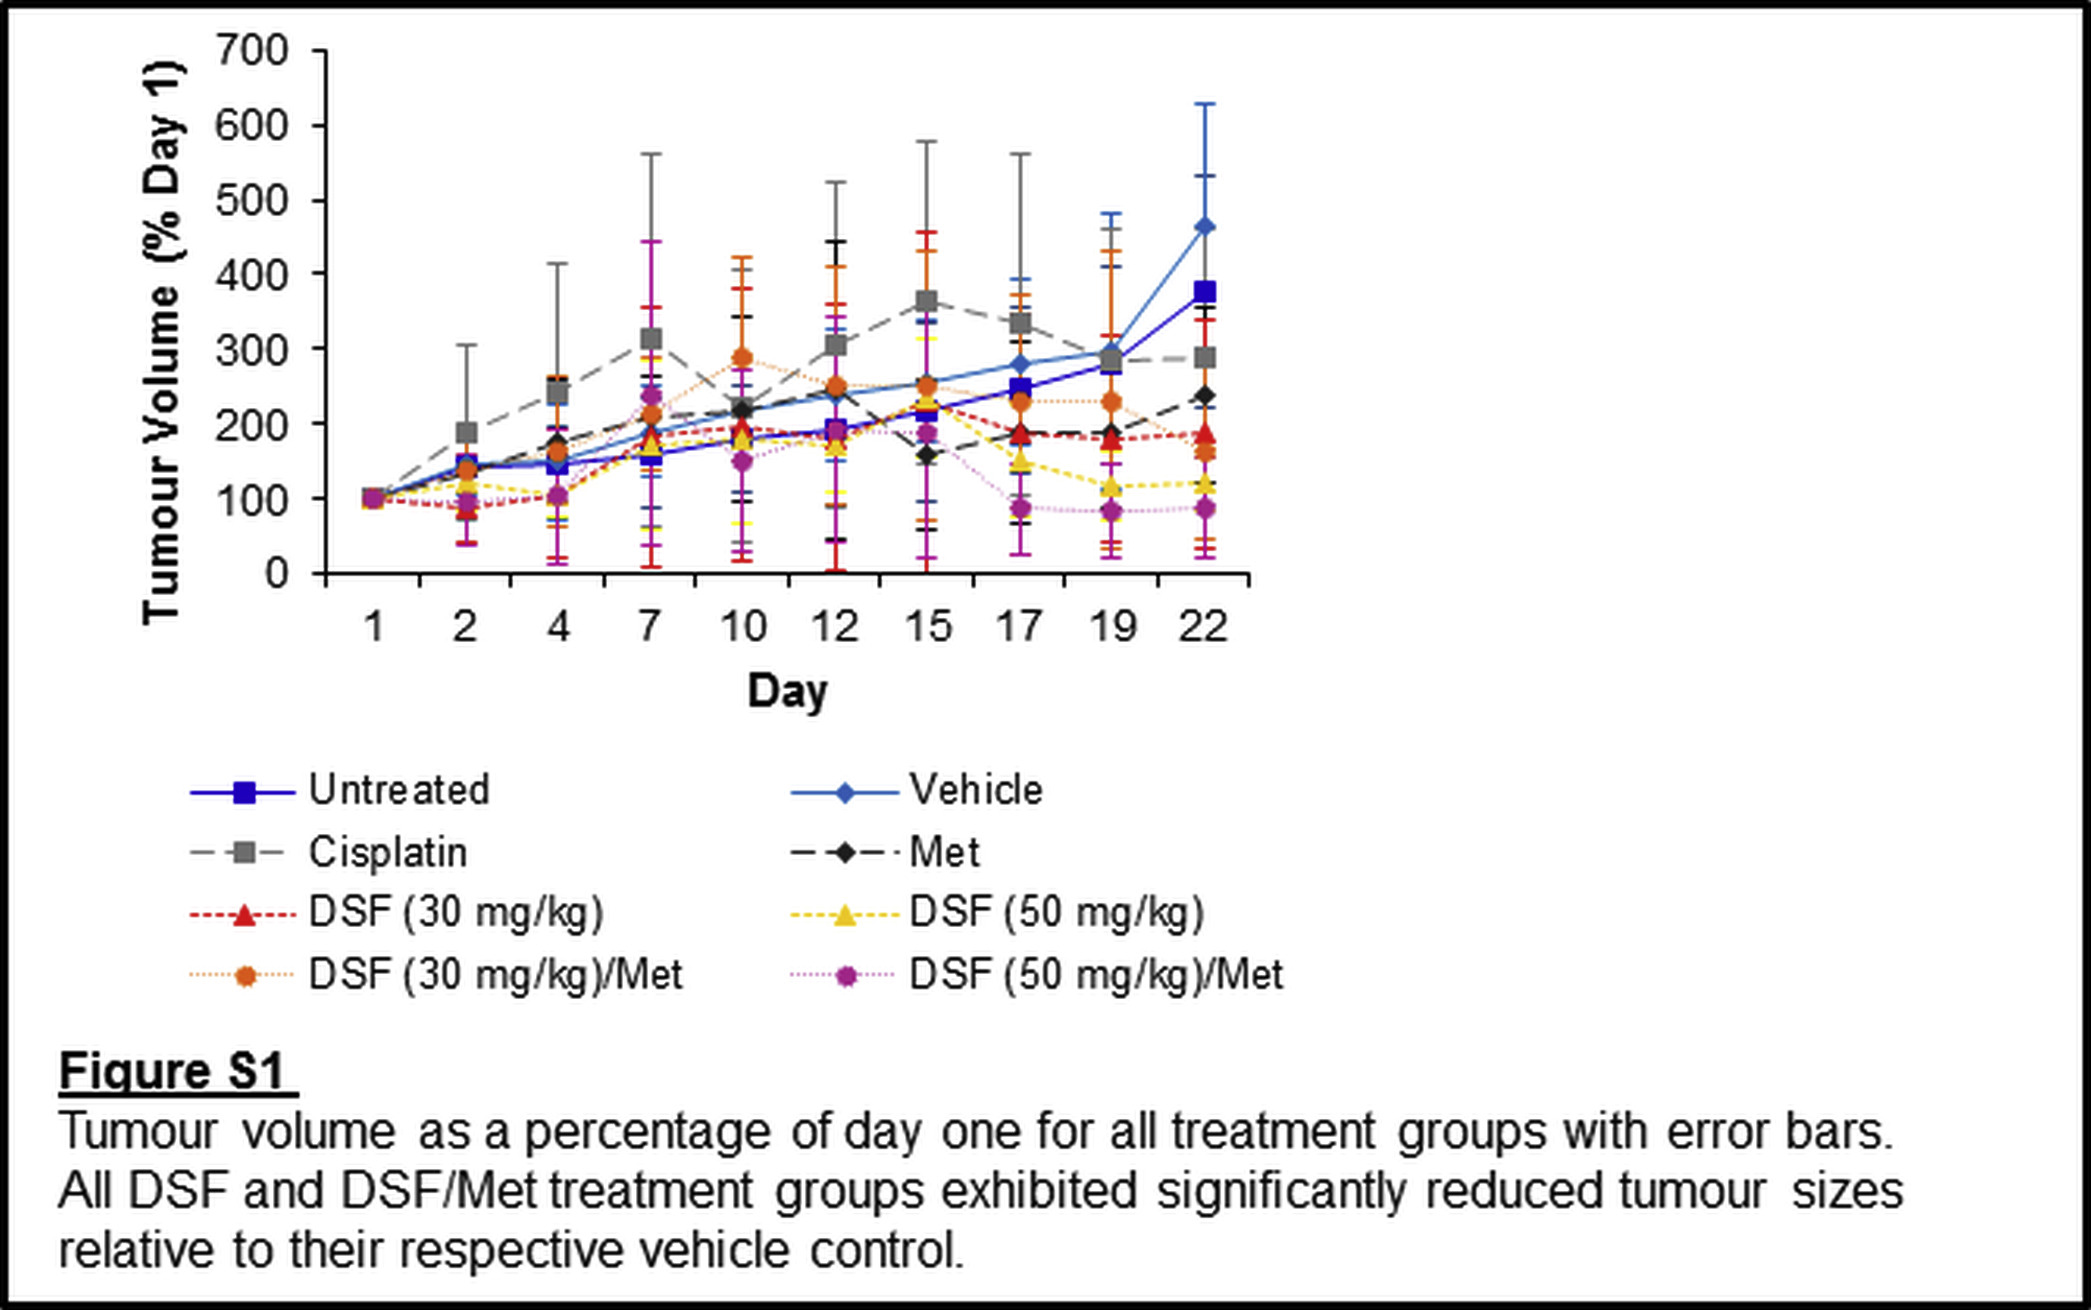 Disulfiram With Or Without Metformin Inhibits Oesophageal Squamous